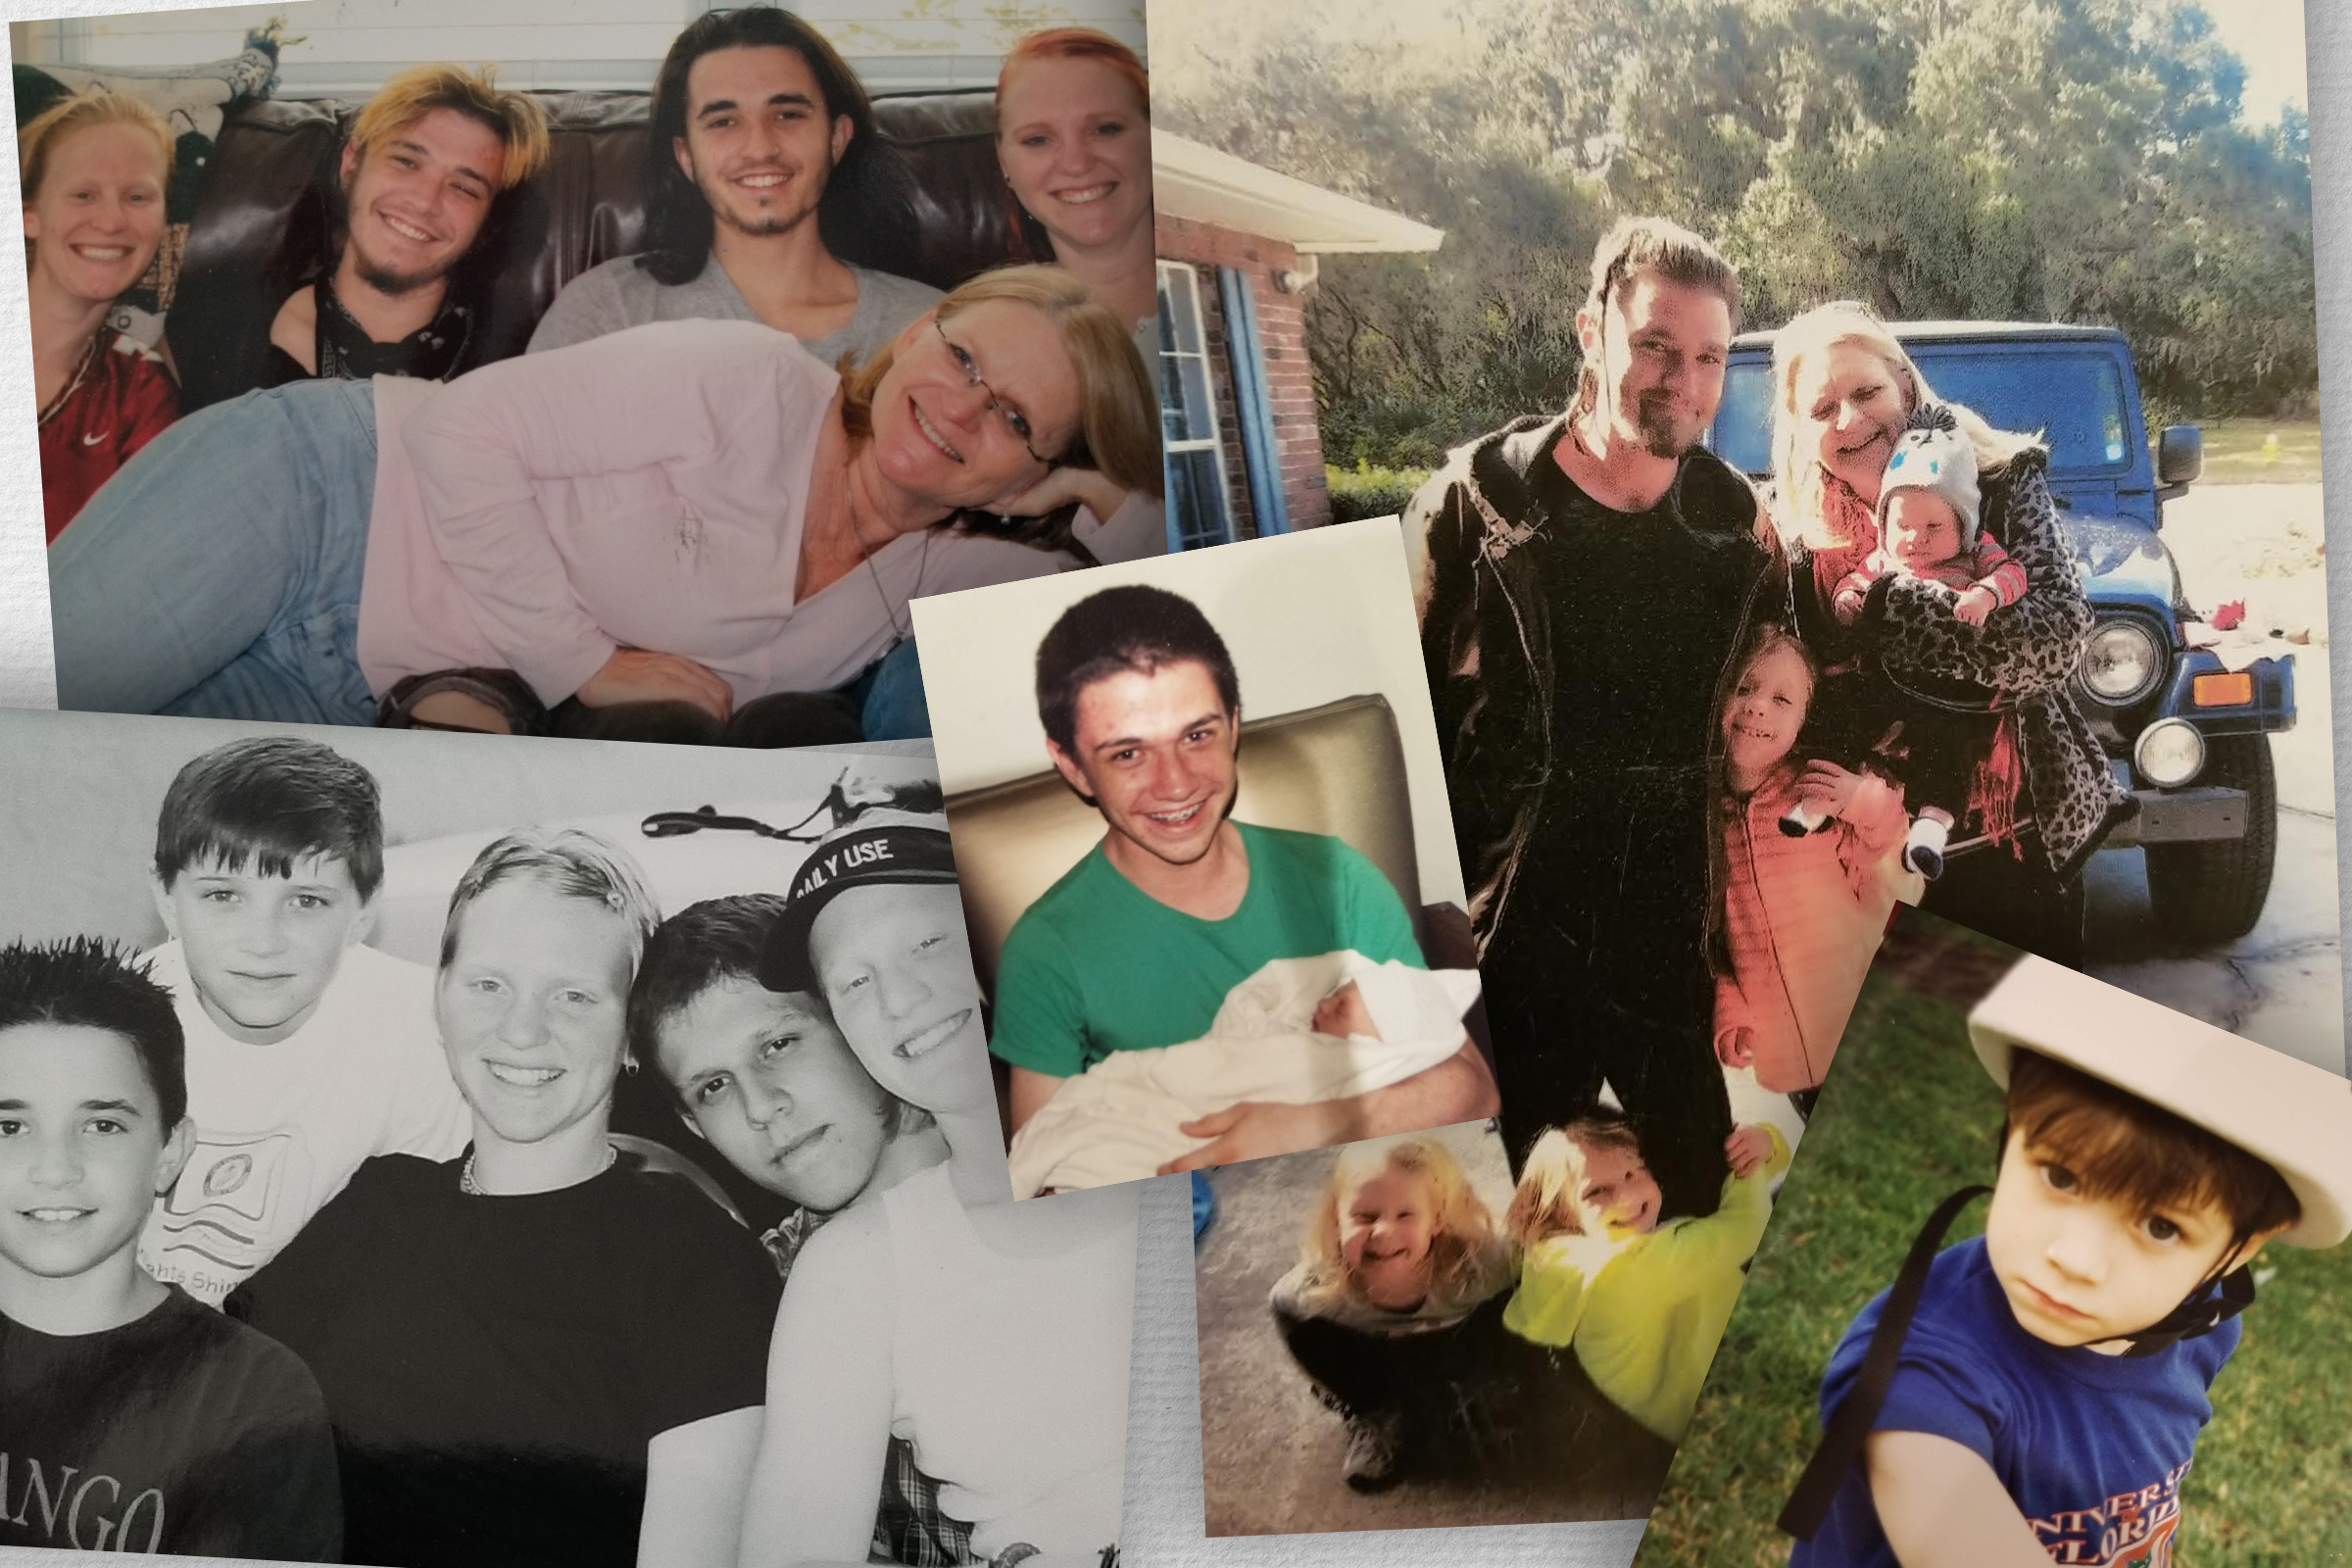 Photos of Robert Mast and his family members.